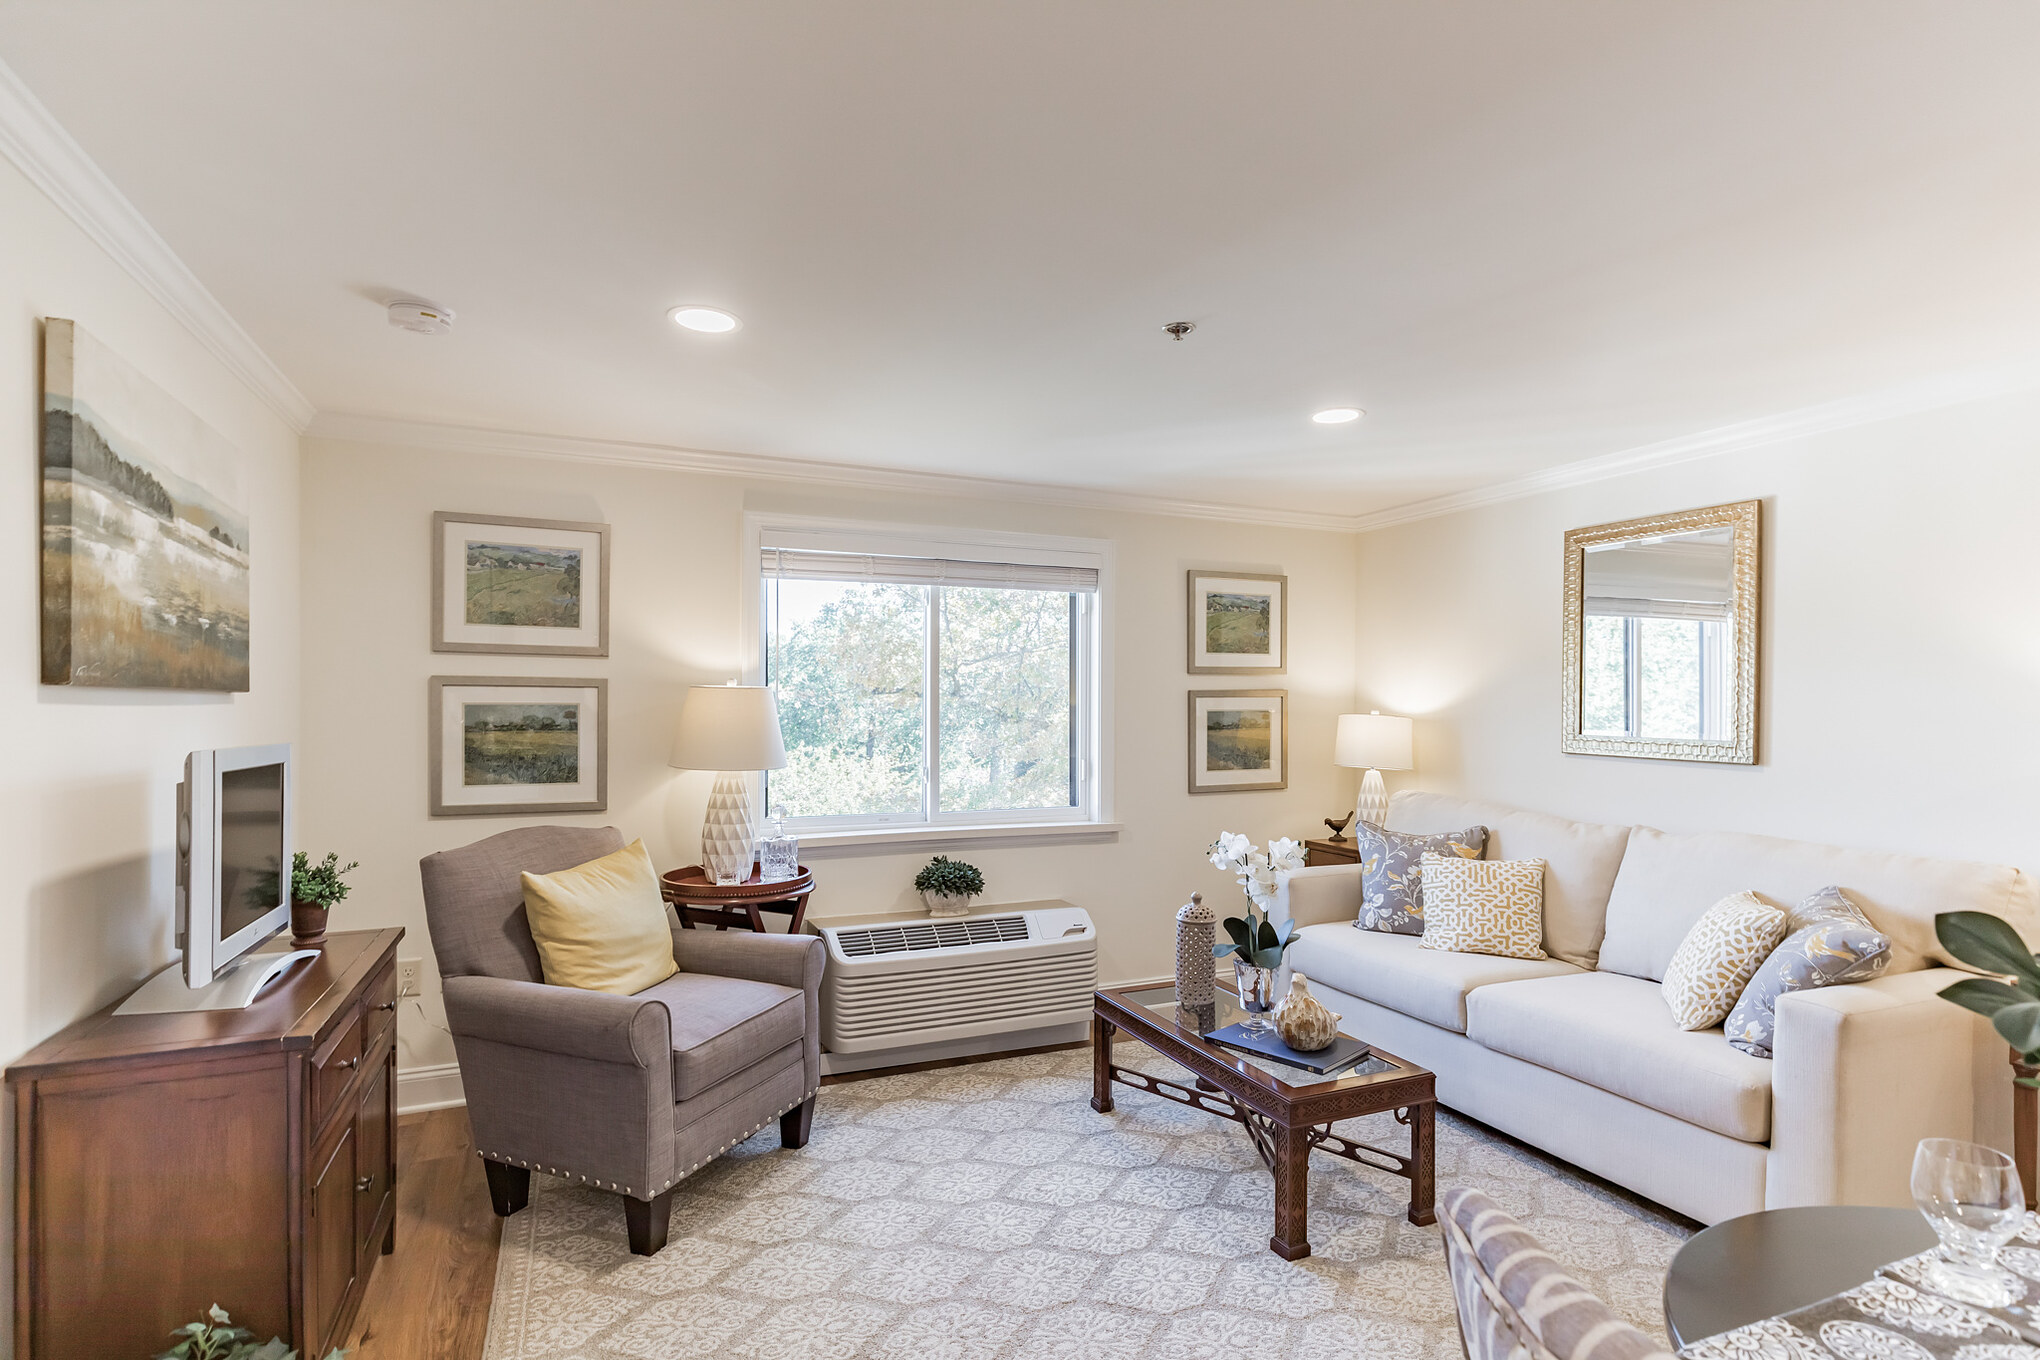 The Cheswick Series living room